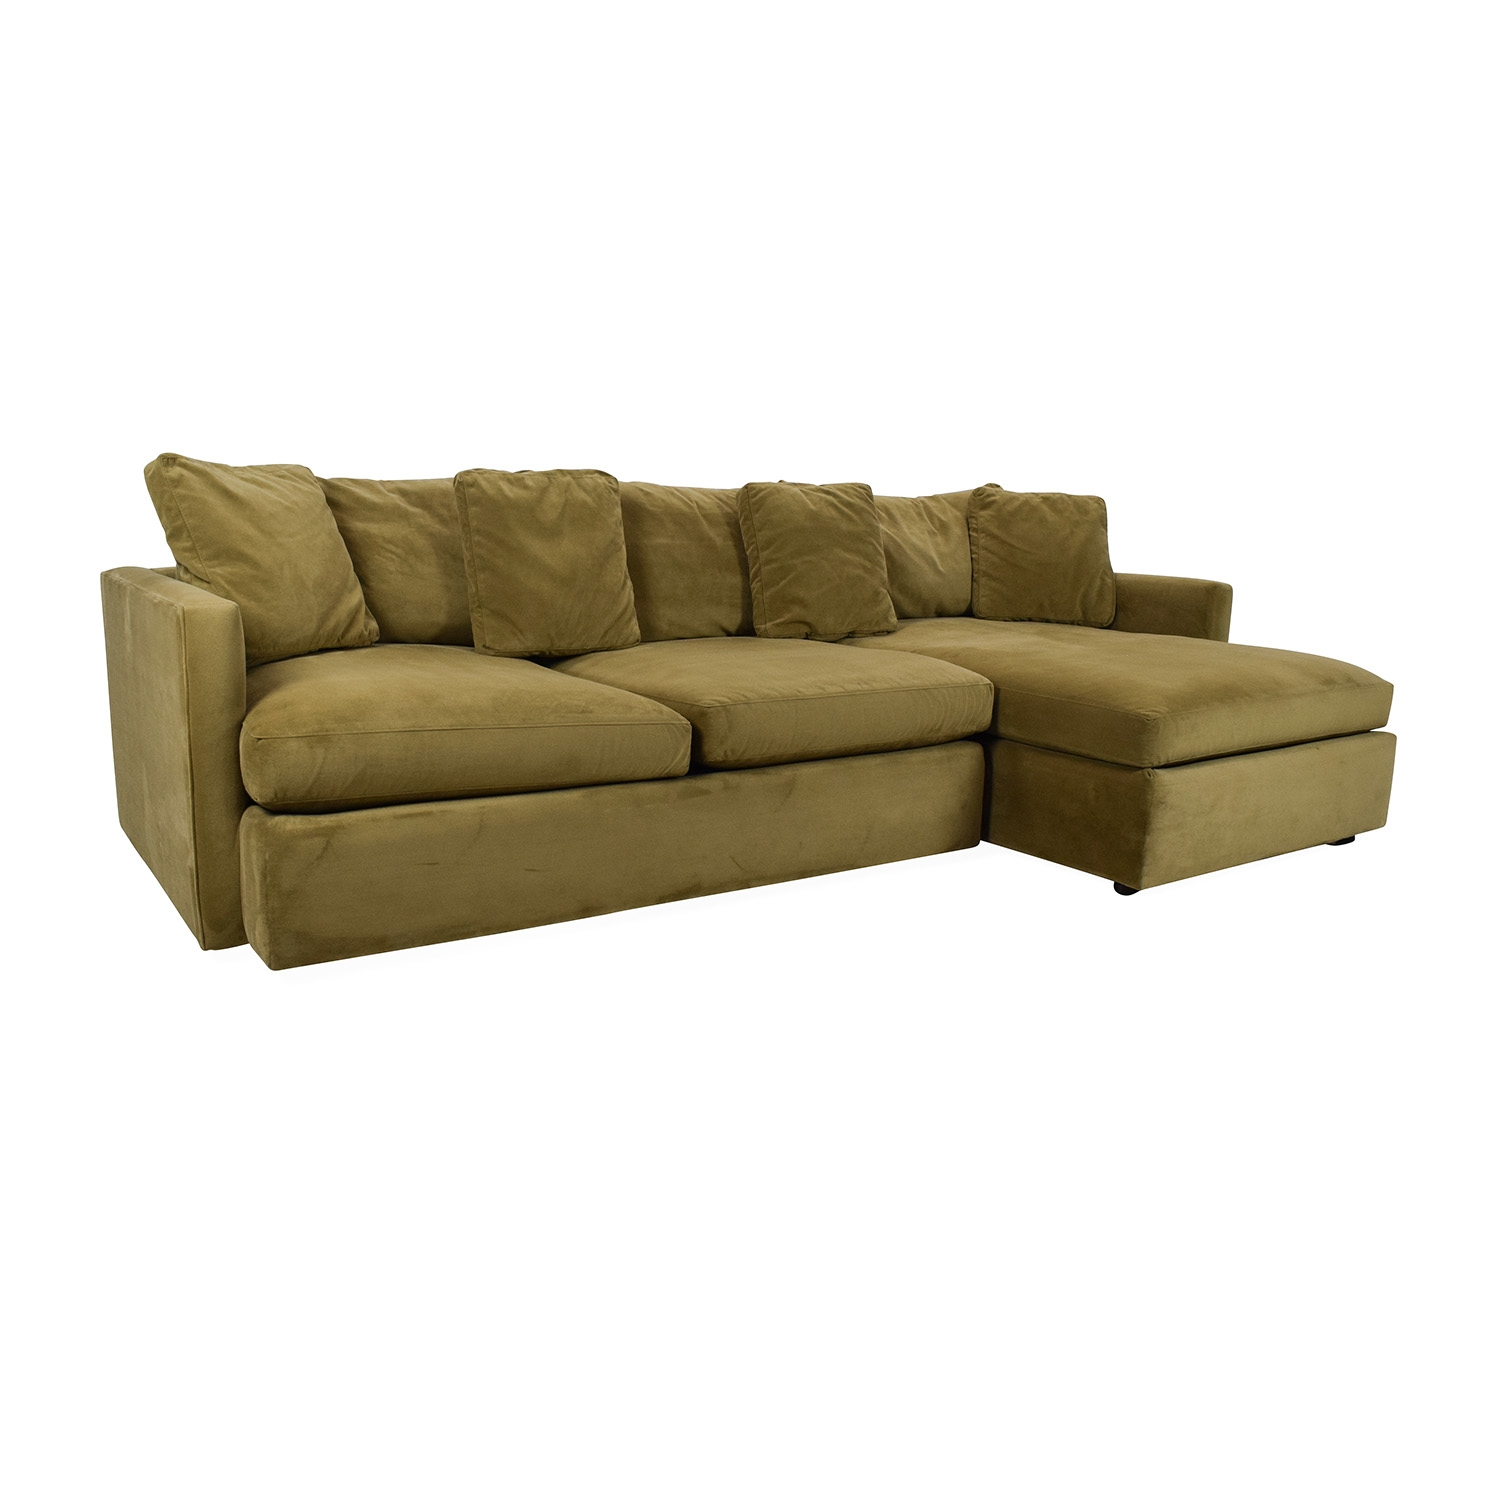 crate and barrel leather sofa bed fabrics india 15 collection of sectional sofas ideas